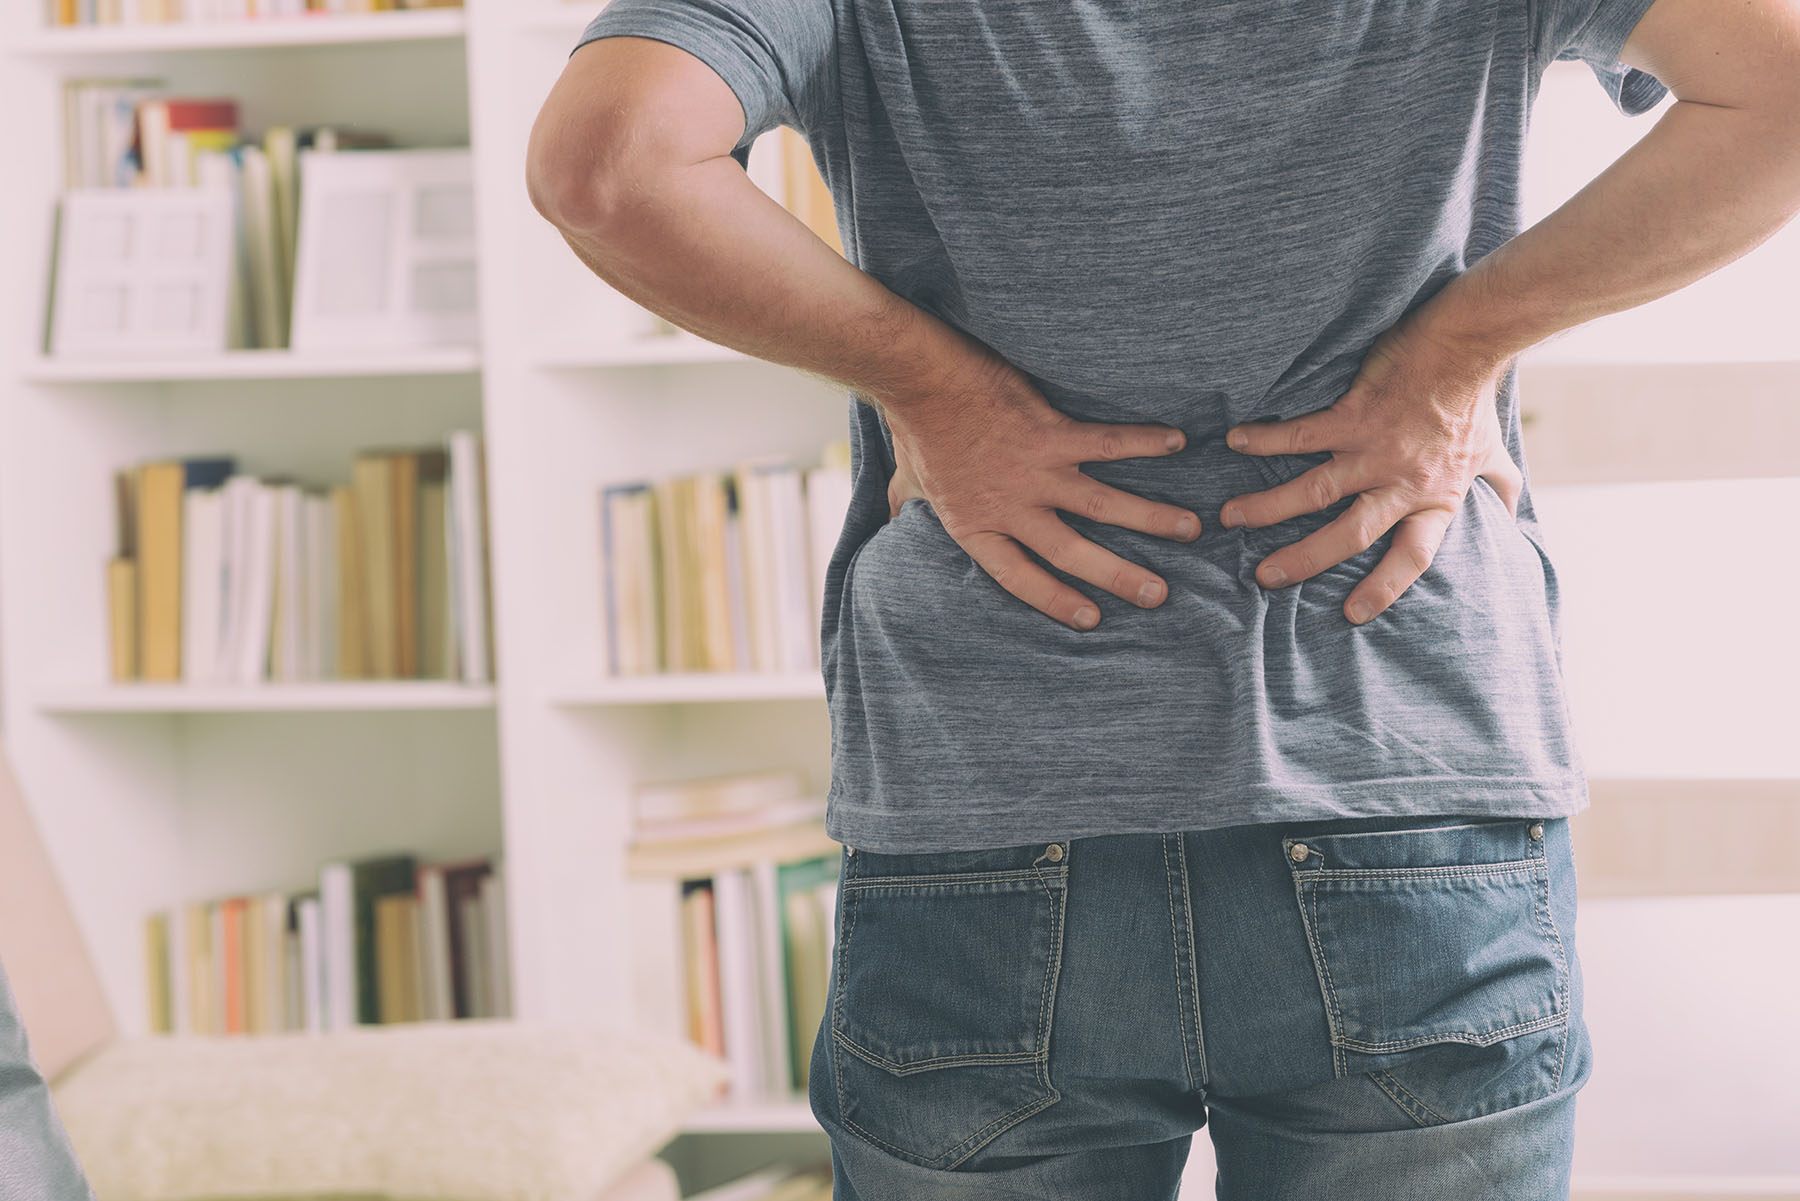 Man in home office suffering from low back pain standing